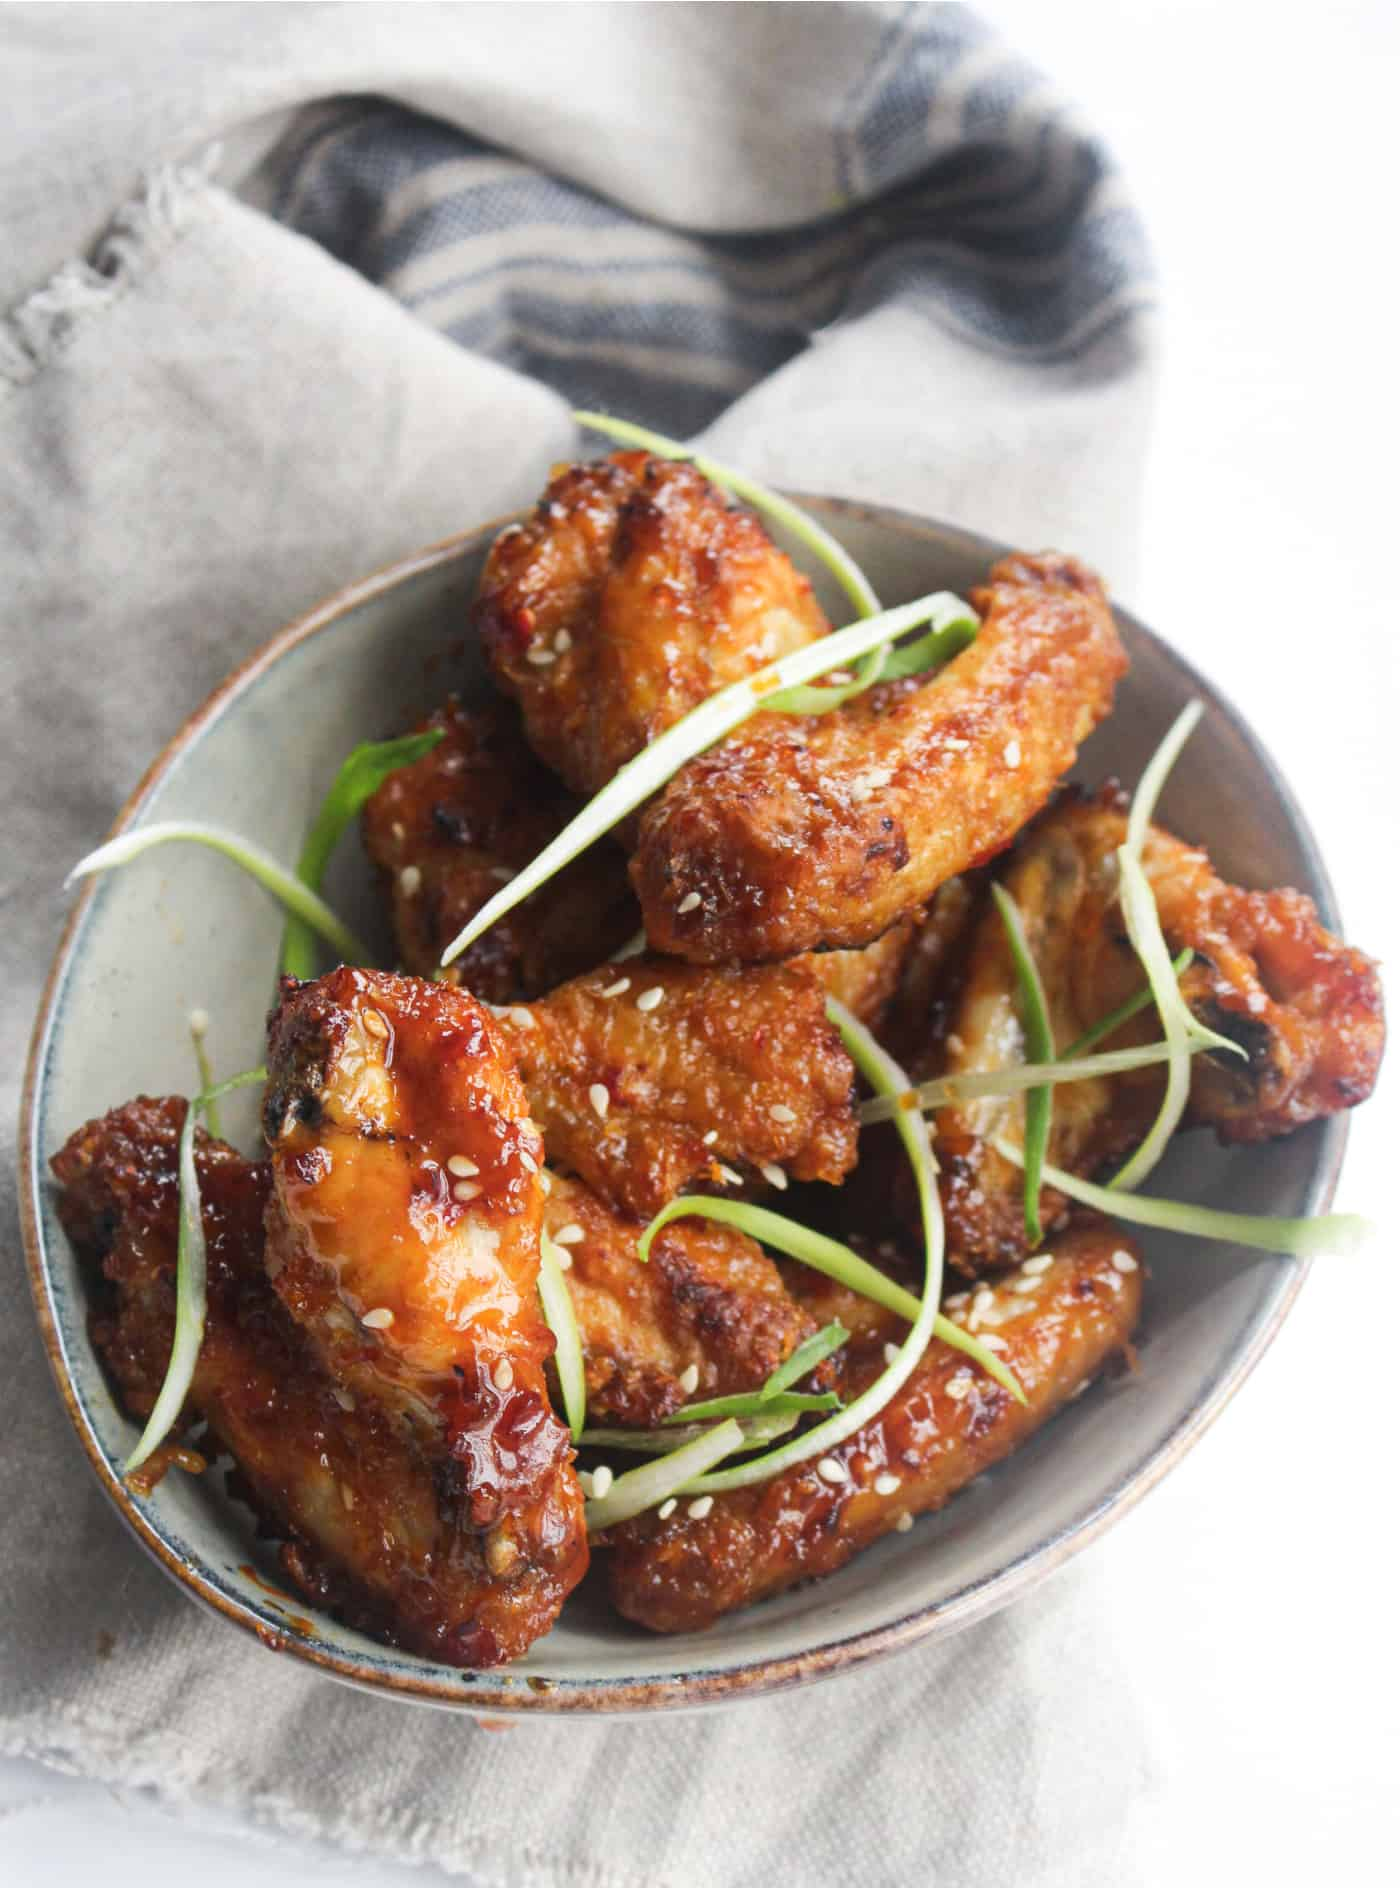 cooked crispy air fryer chicken wings in a bowl with green onion topping